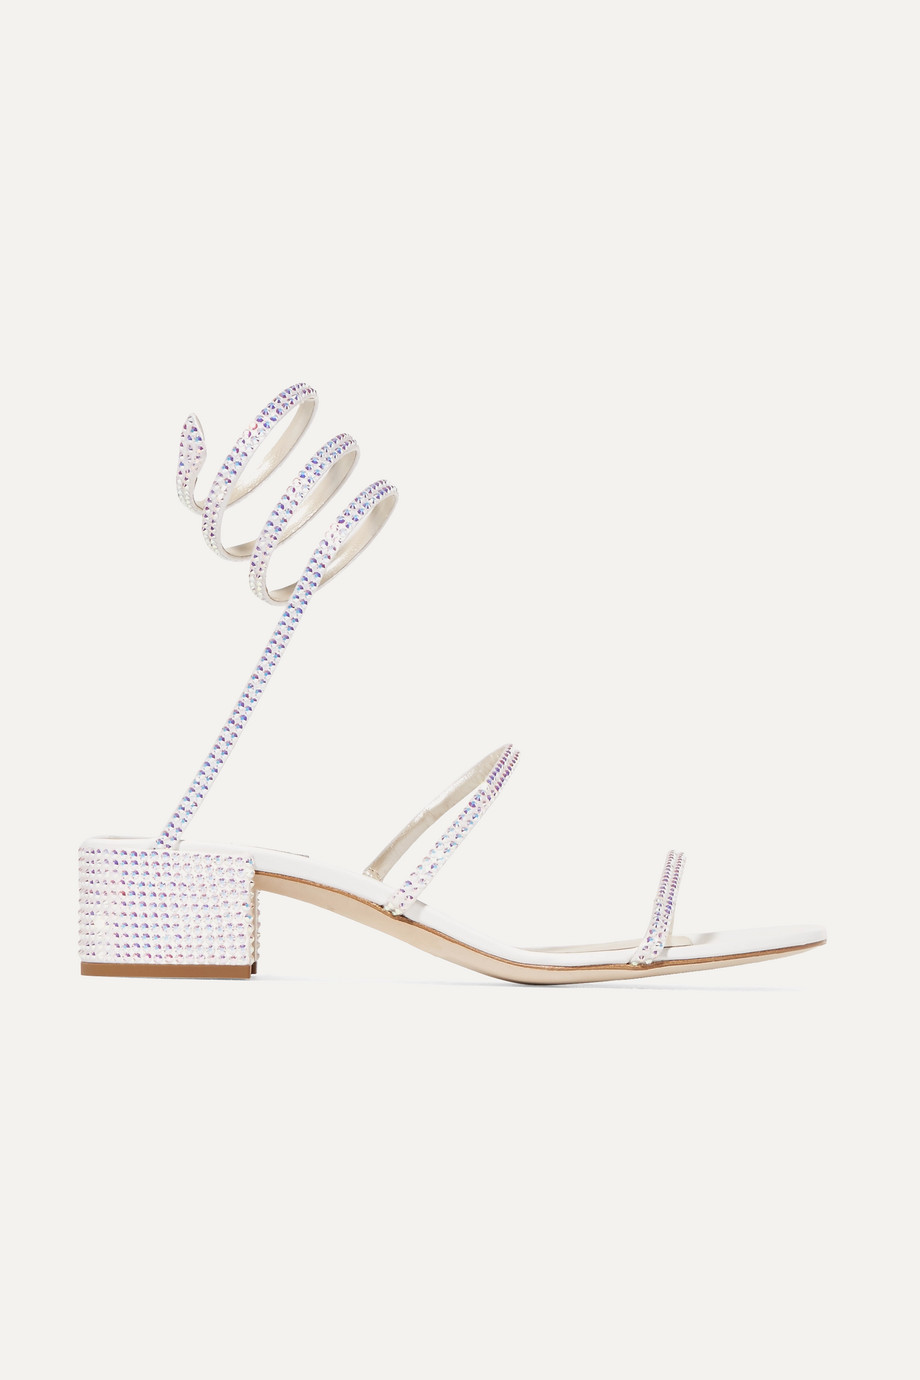 René Caovilla Cleo crystal-embellished satin and leather sandals